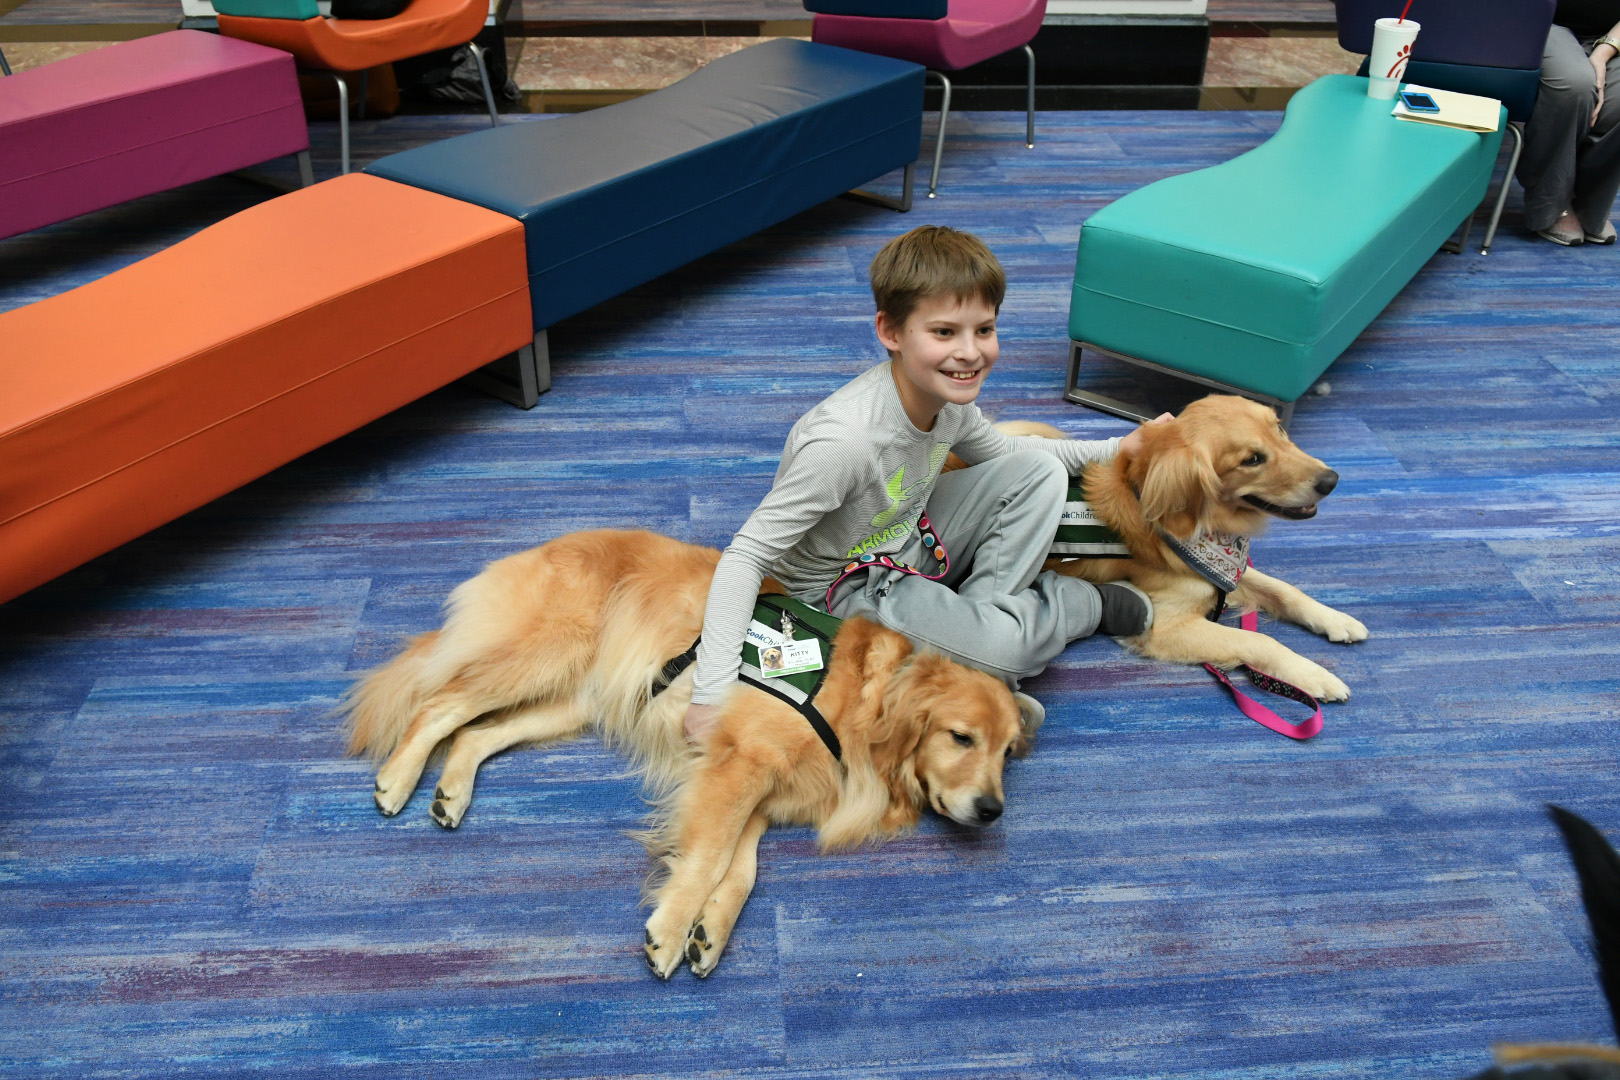 In-residence dogs doing their job to bring joy to a child undergoing treatment at Cook Children's Hospital.